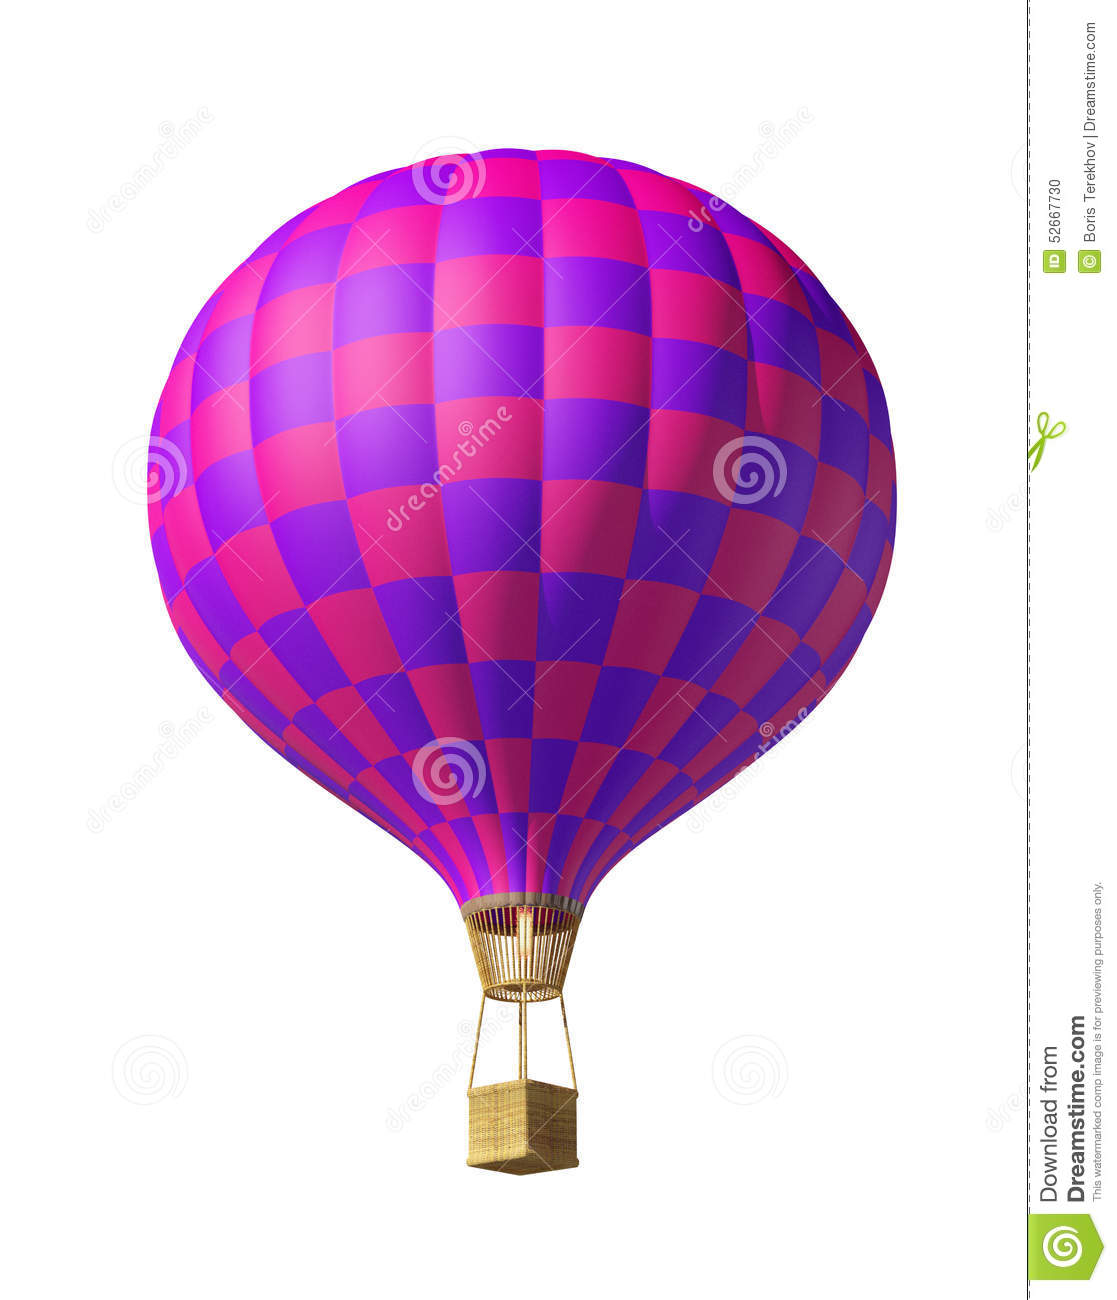 Red-violet Balloon Stock Illustration - Image: 52667730